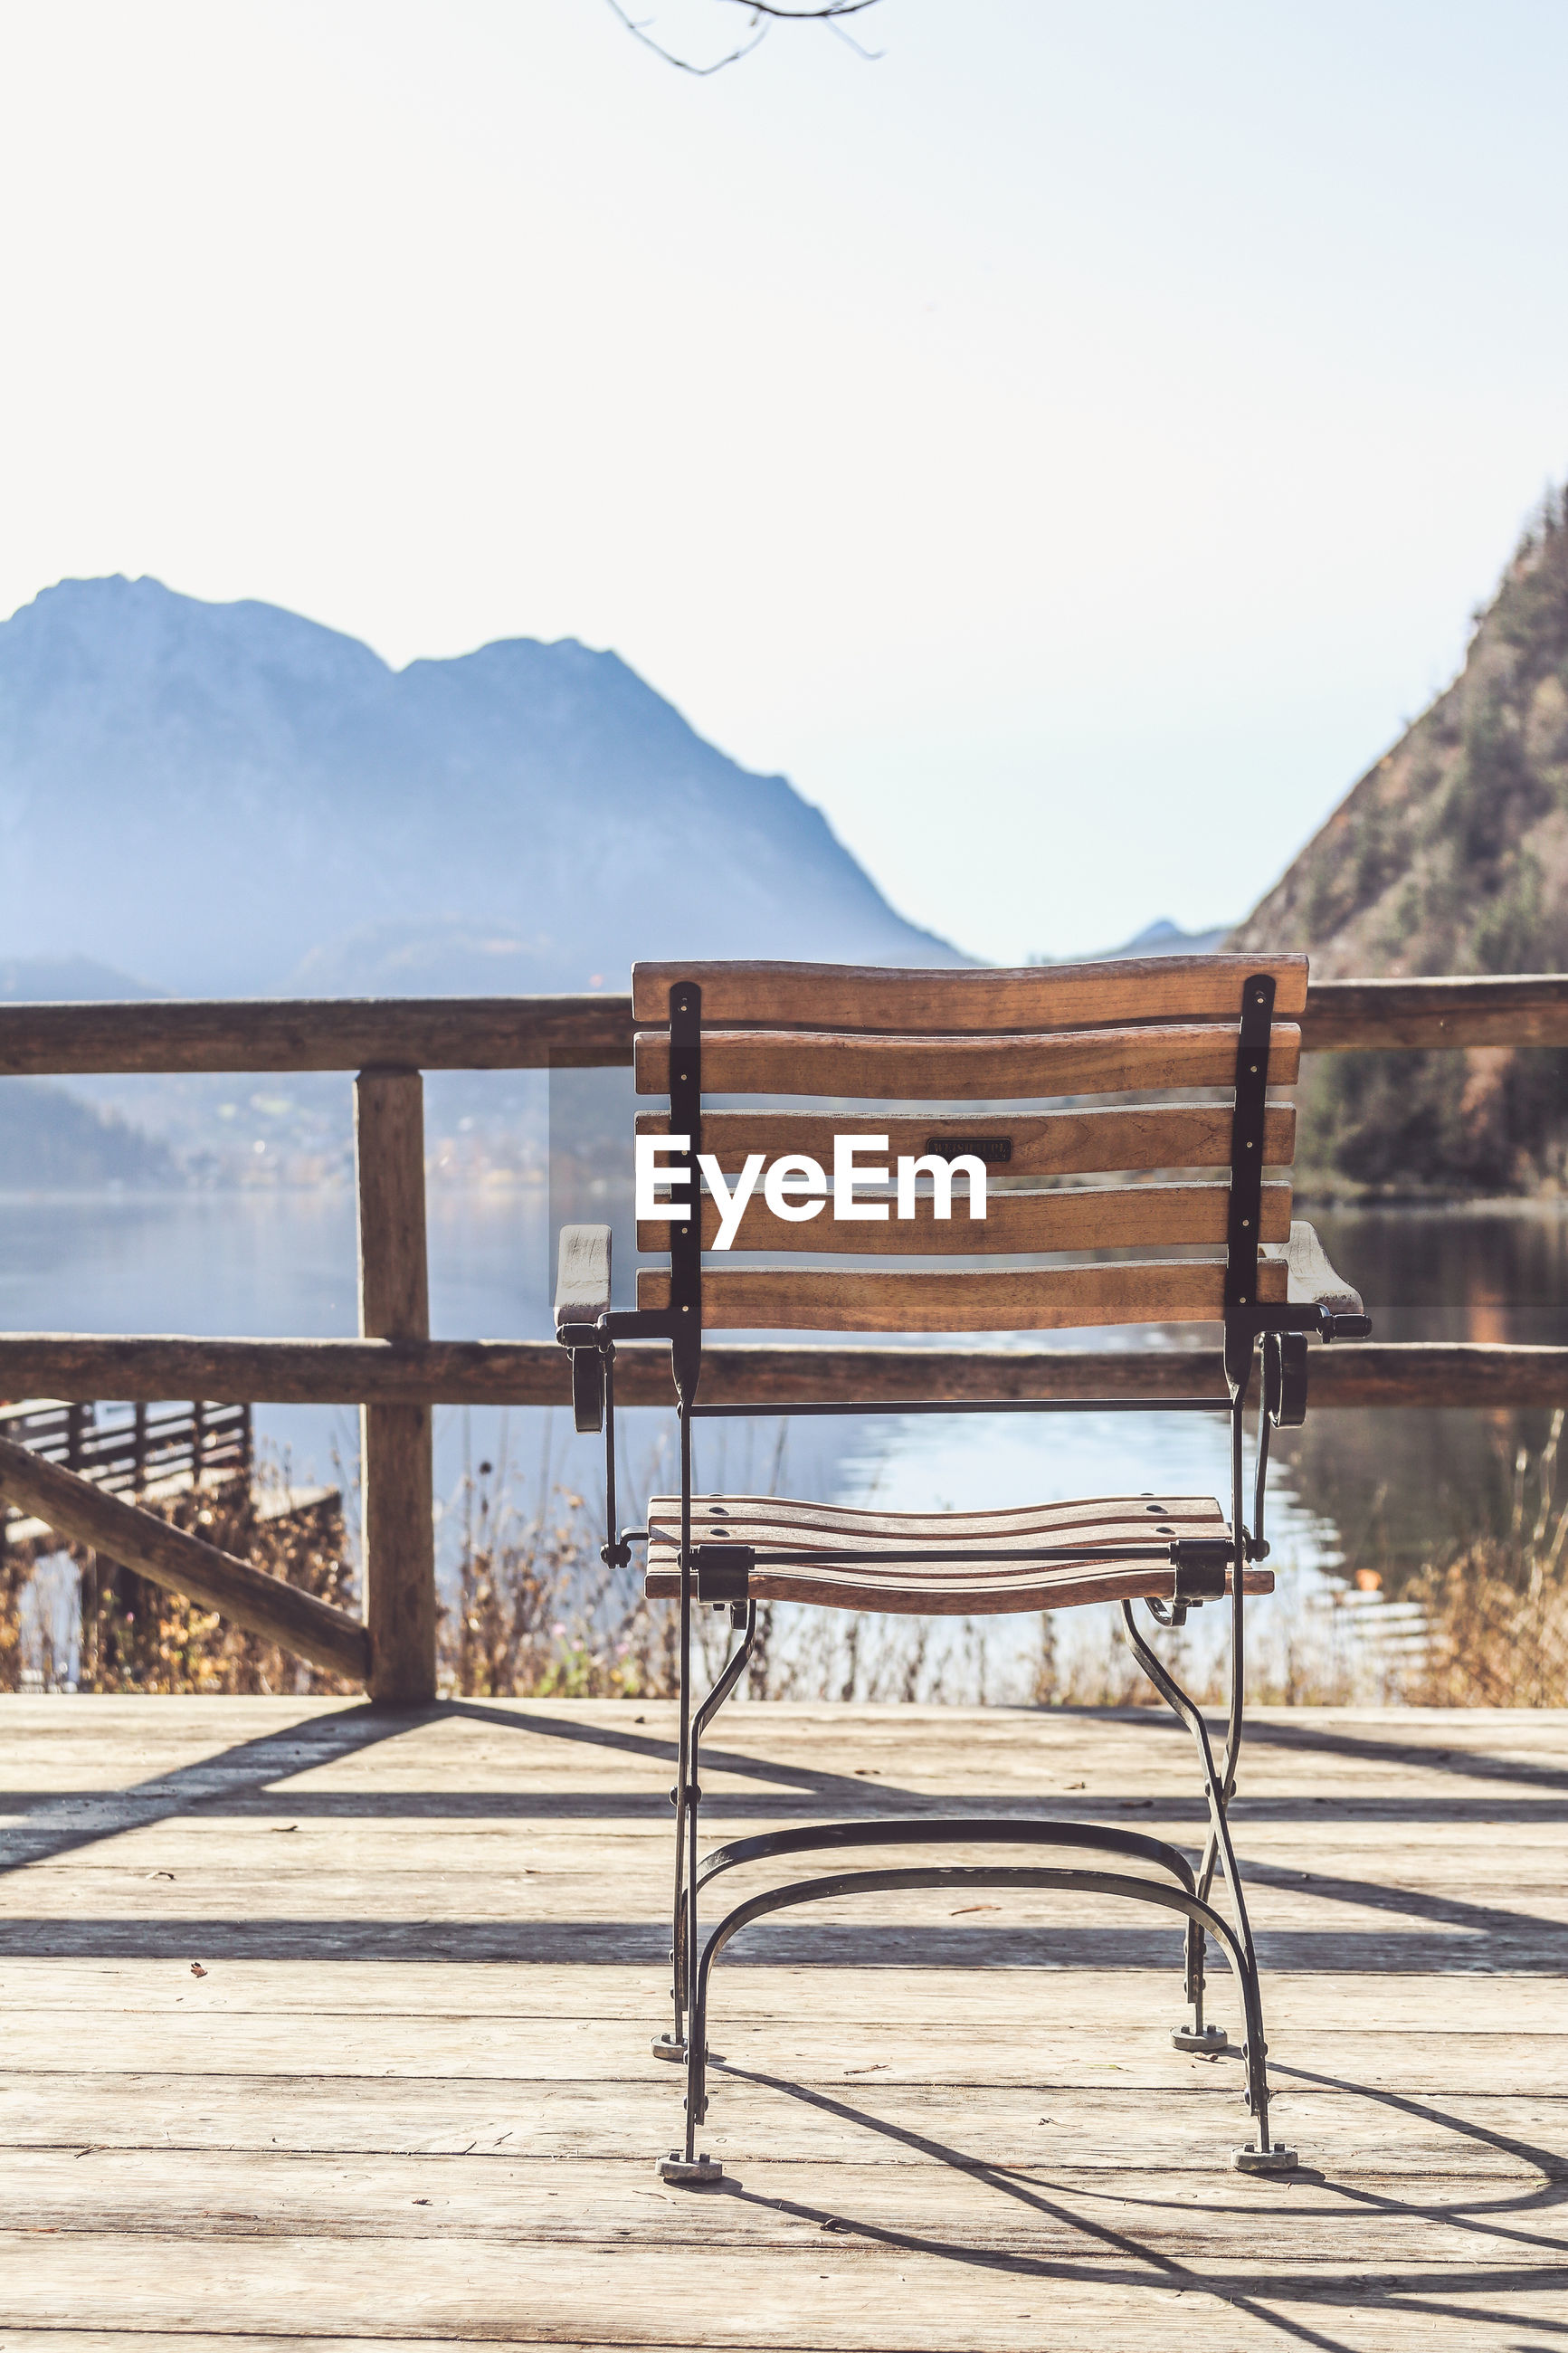 EMPTY CHAIRS AND TABLE AGAINST MOUNTAINS